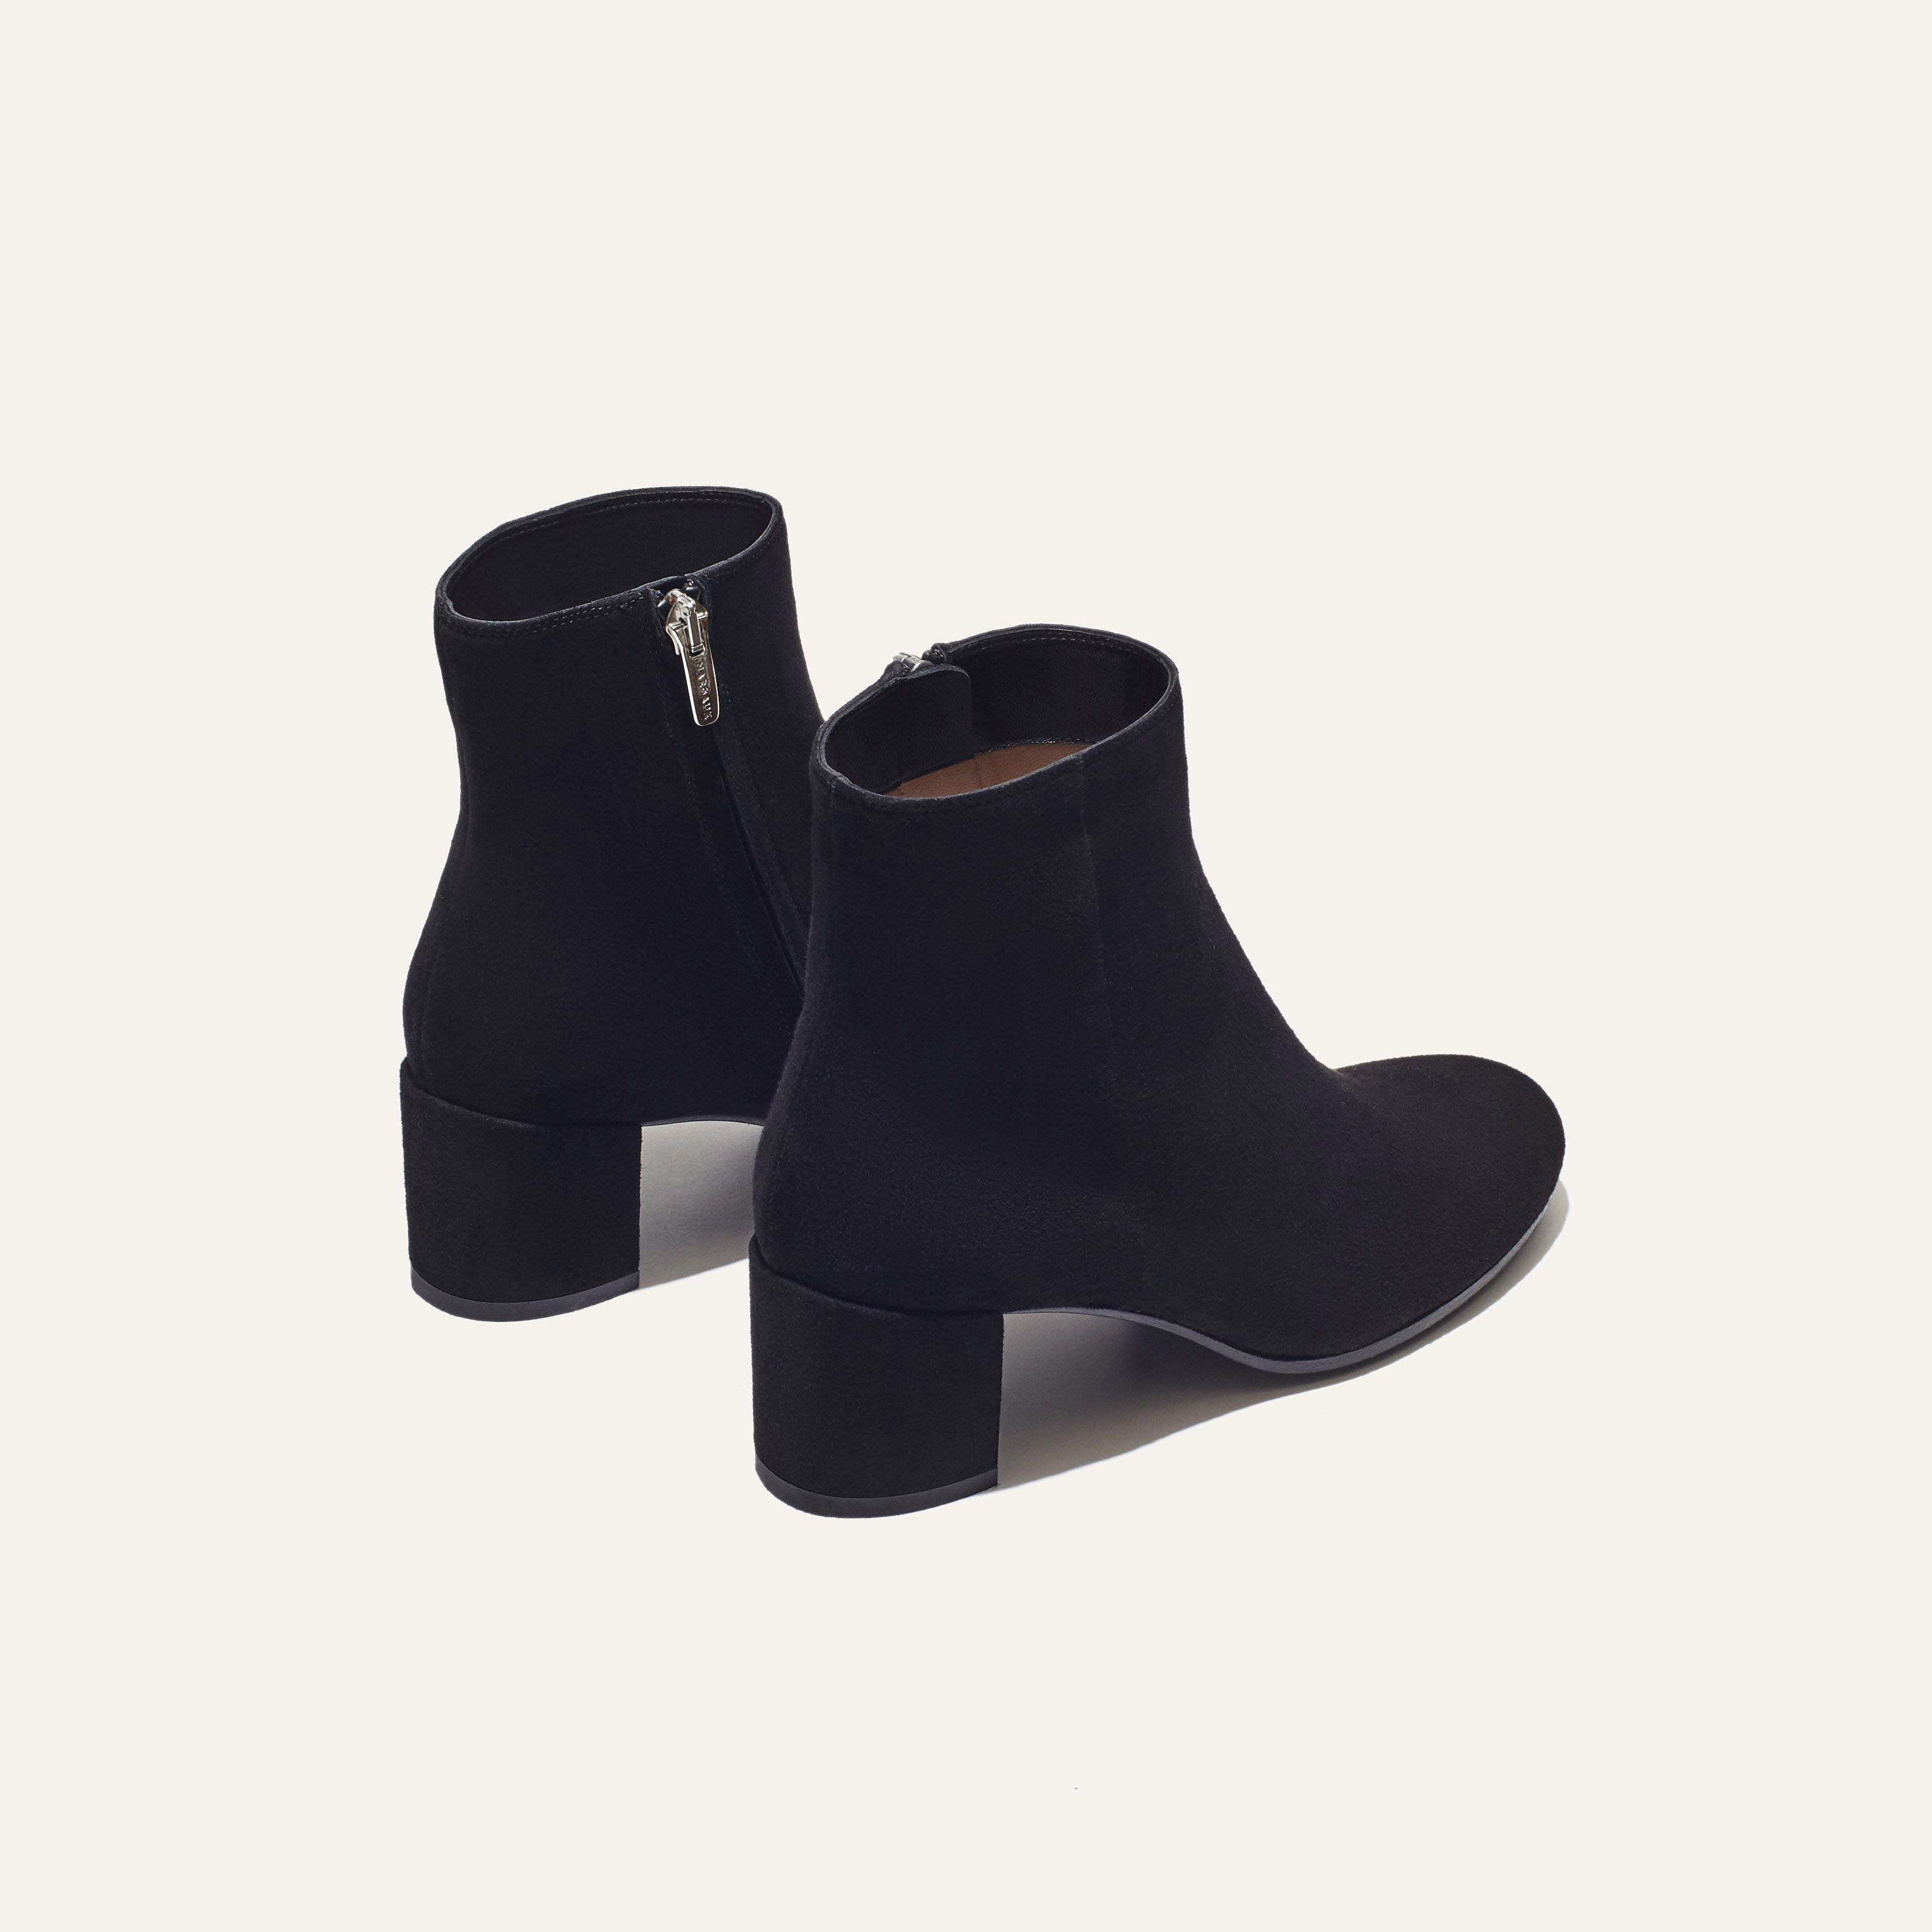 The Boot - Black 3